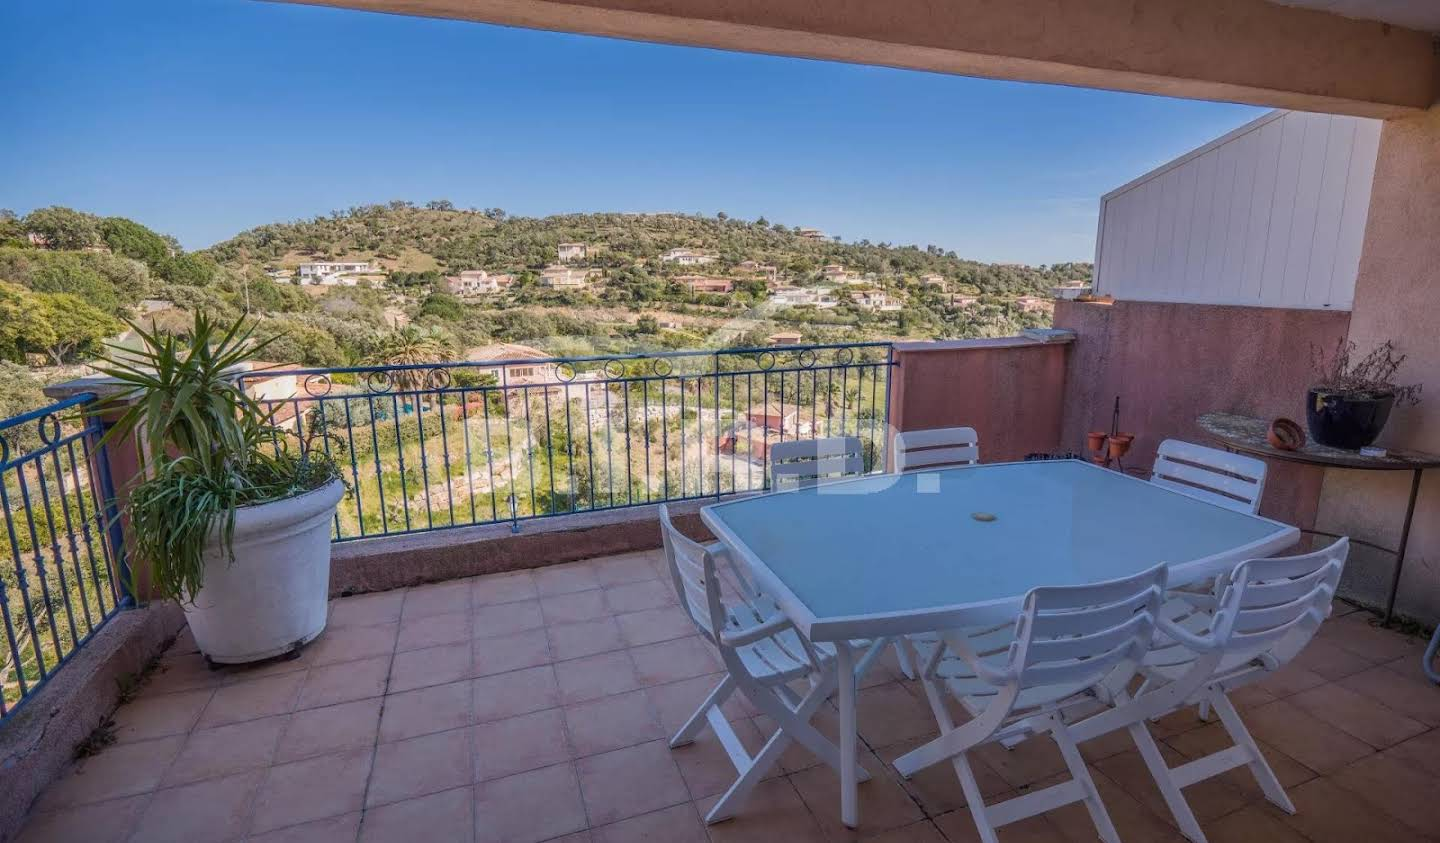 Apartment with terrace and pool Sainte-Maxime